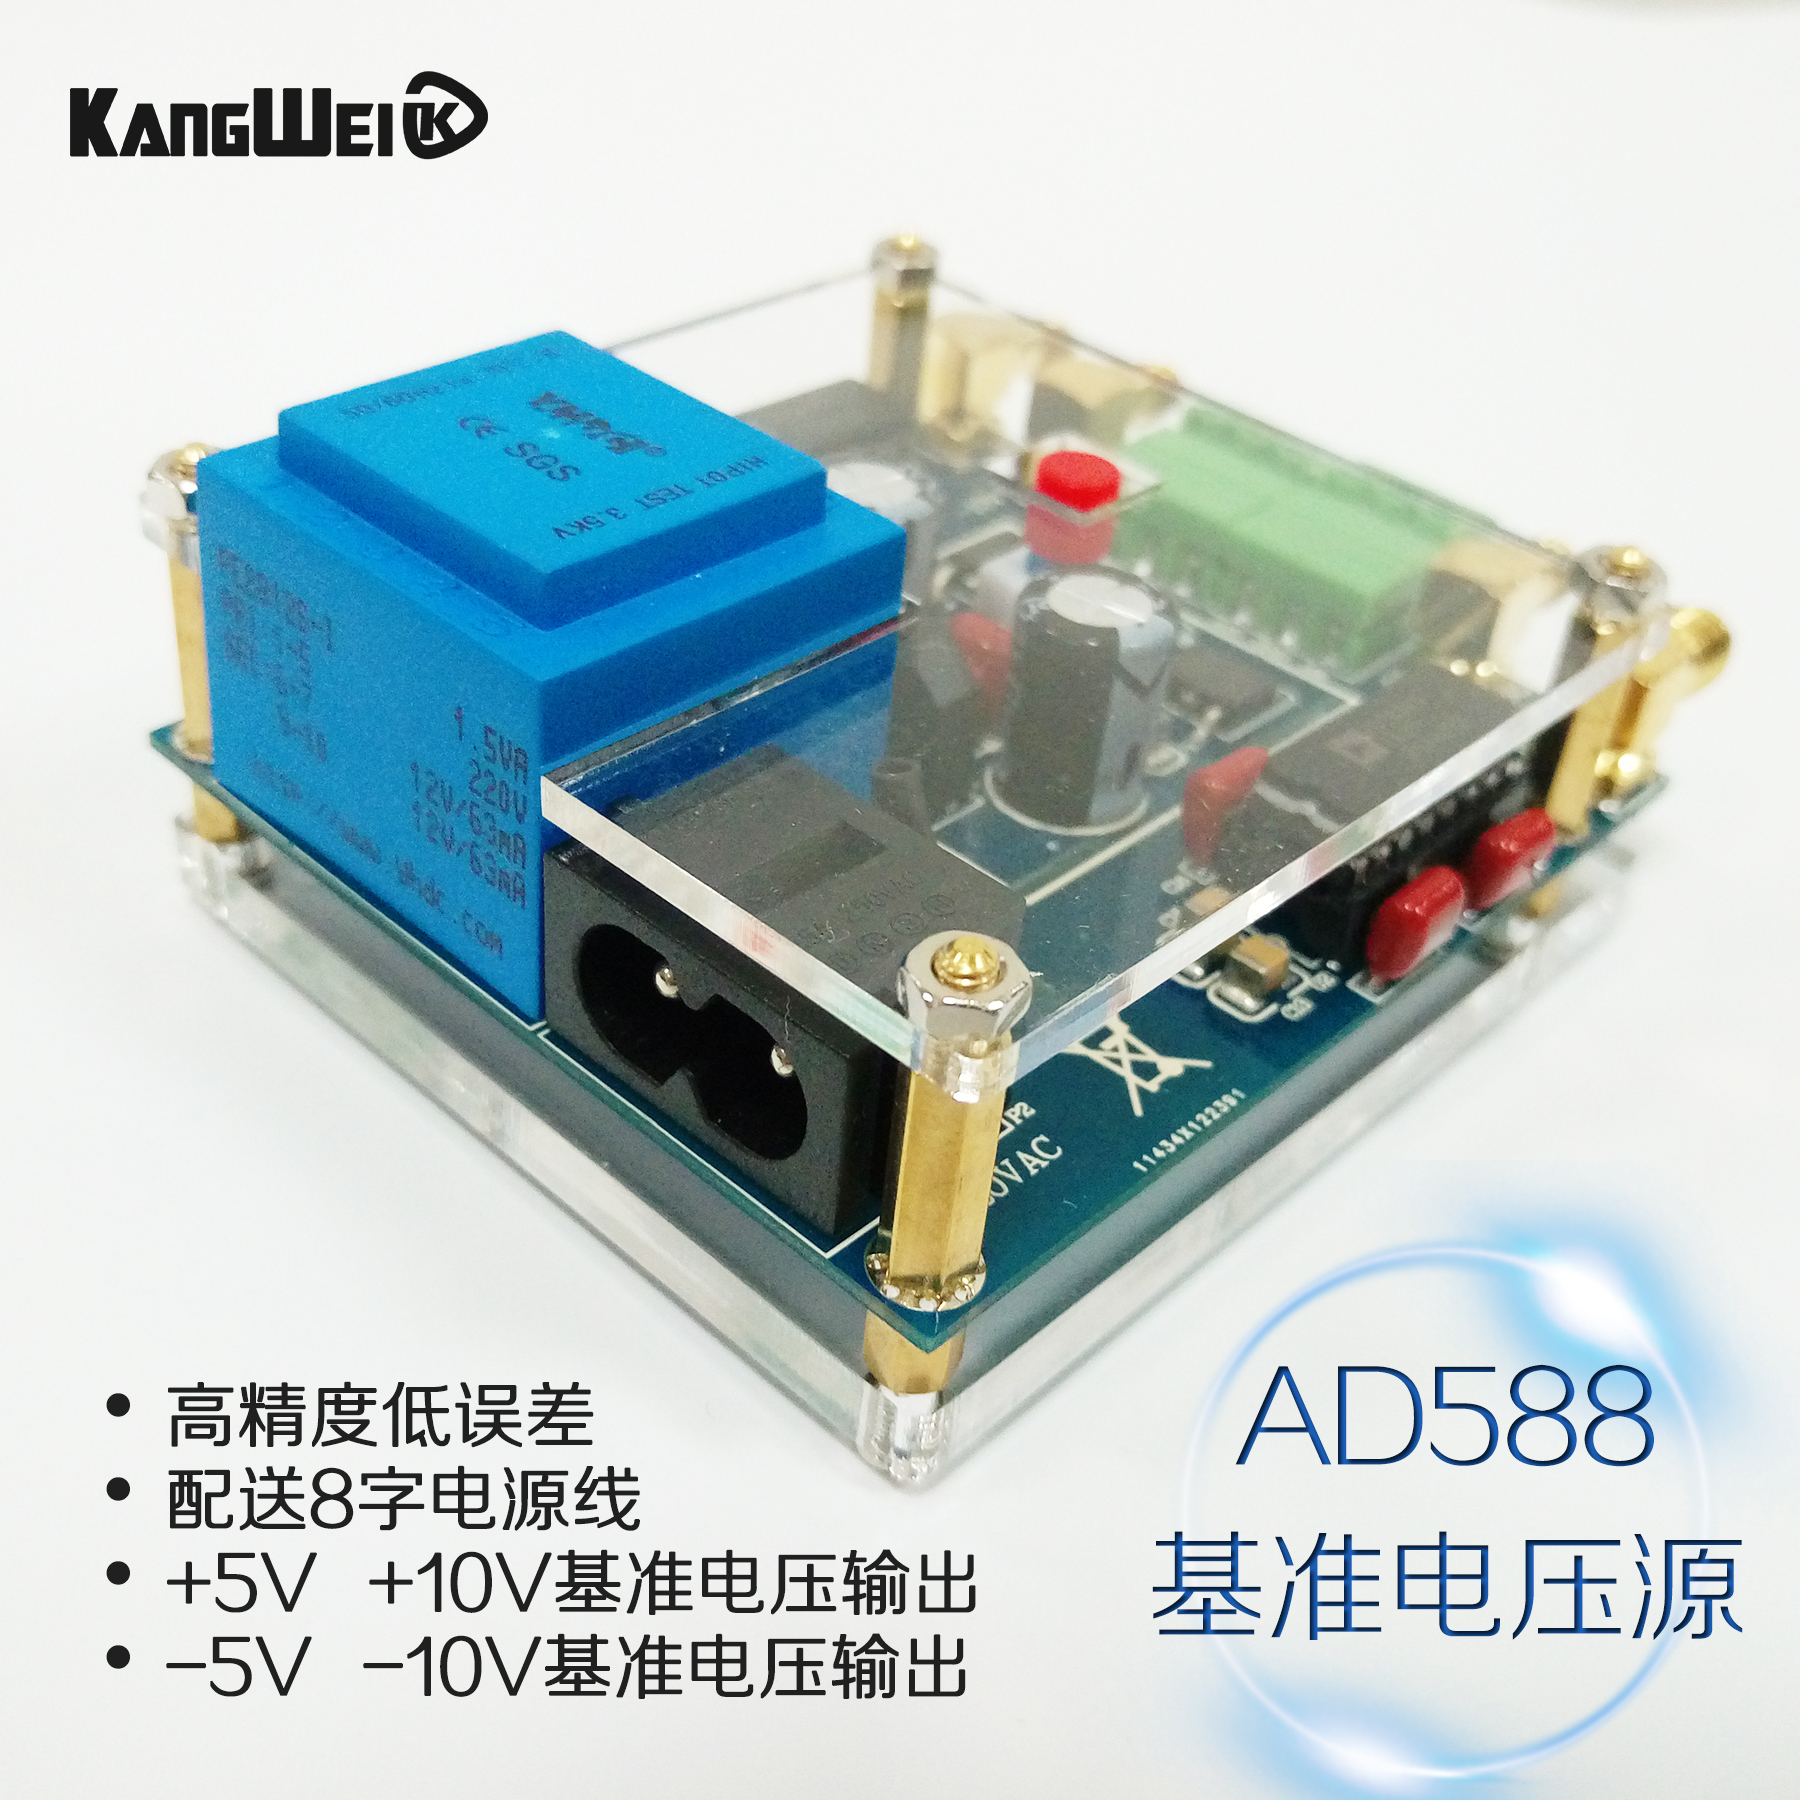 AD588 Voltage Reference Positive Negative 5V 10V DAC Voltage Reference Ammeter Corrected High Precision Reference Source corel wordperfect 9 0 quick source reference guide